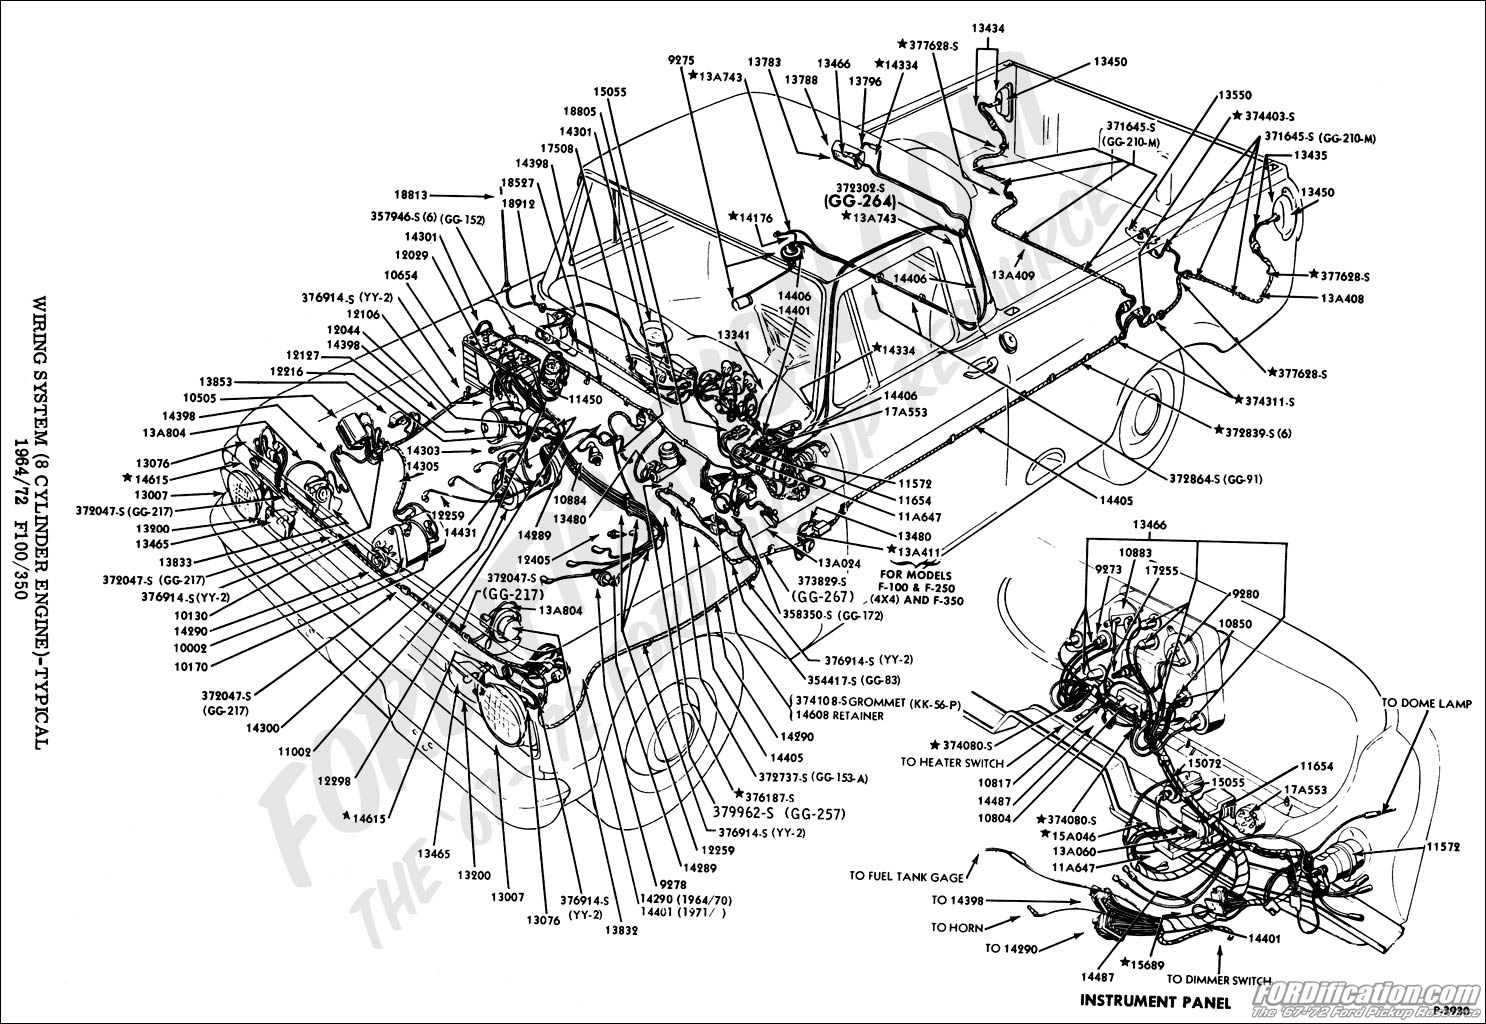 1988 corvette wiring diagrams